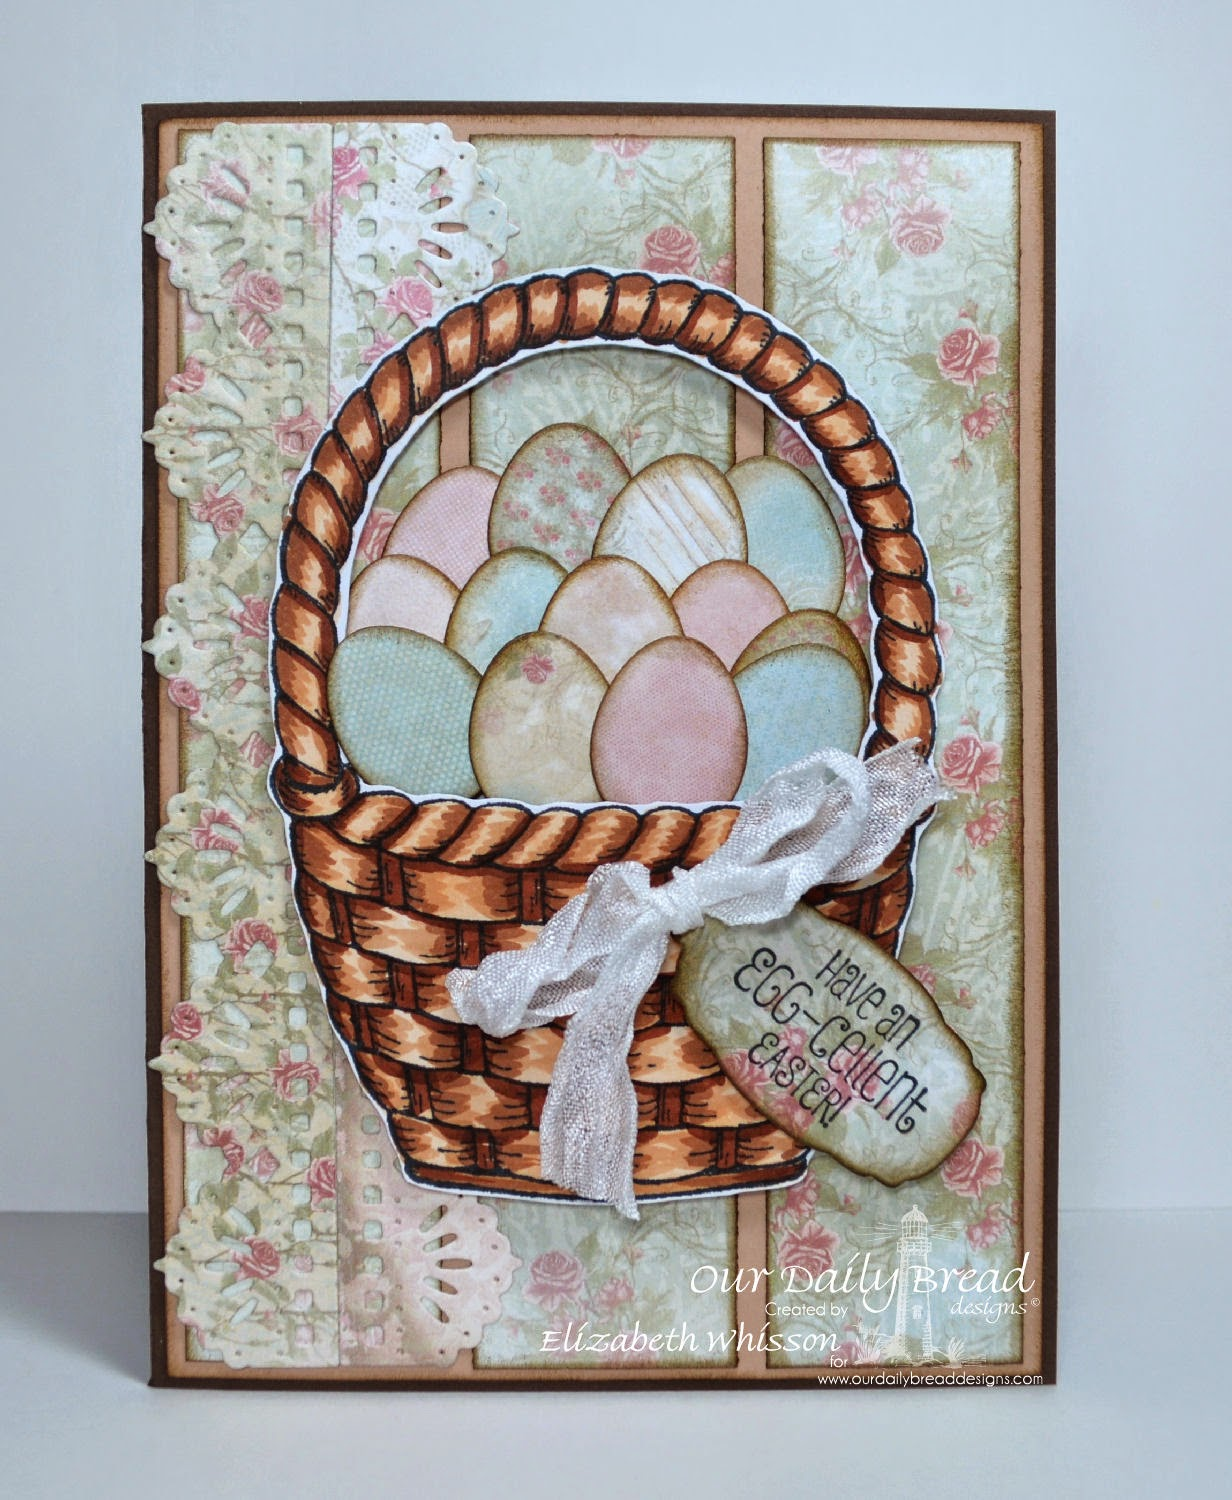 Our Daily Bread Designs, Basket of Blessings, ODBD Eggs Dies, ODBD Beautiful Borders Dies, ODBD Mini Tags Dies, ODBD Shabby Rose Paper Collection, Designed by Elizabeth Whisson